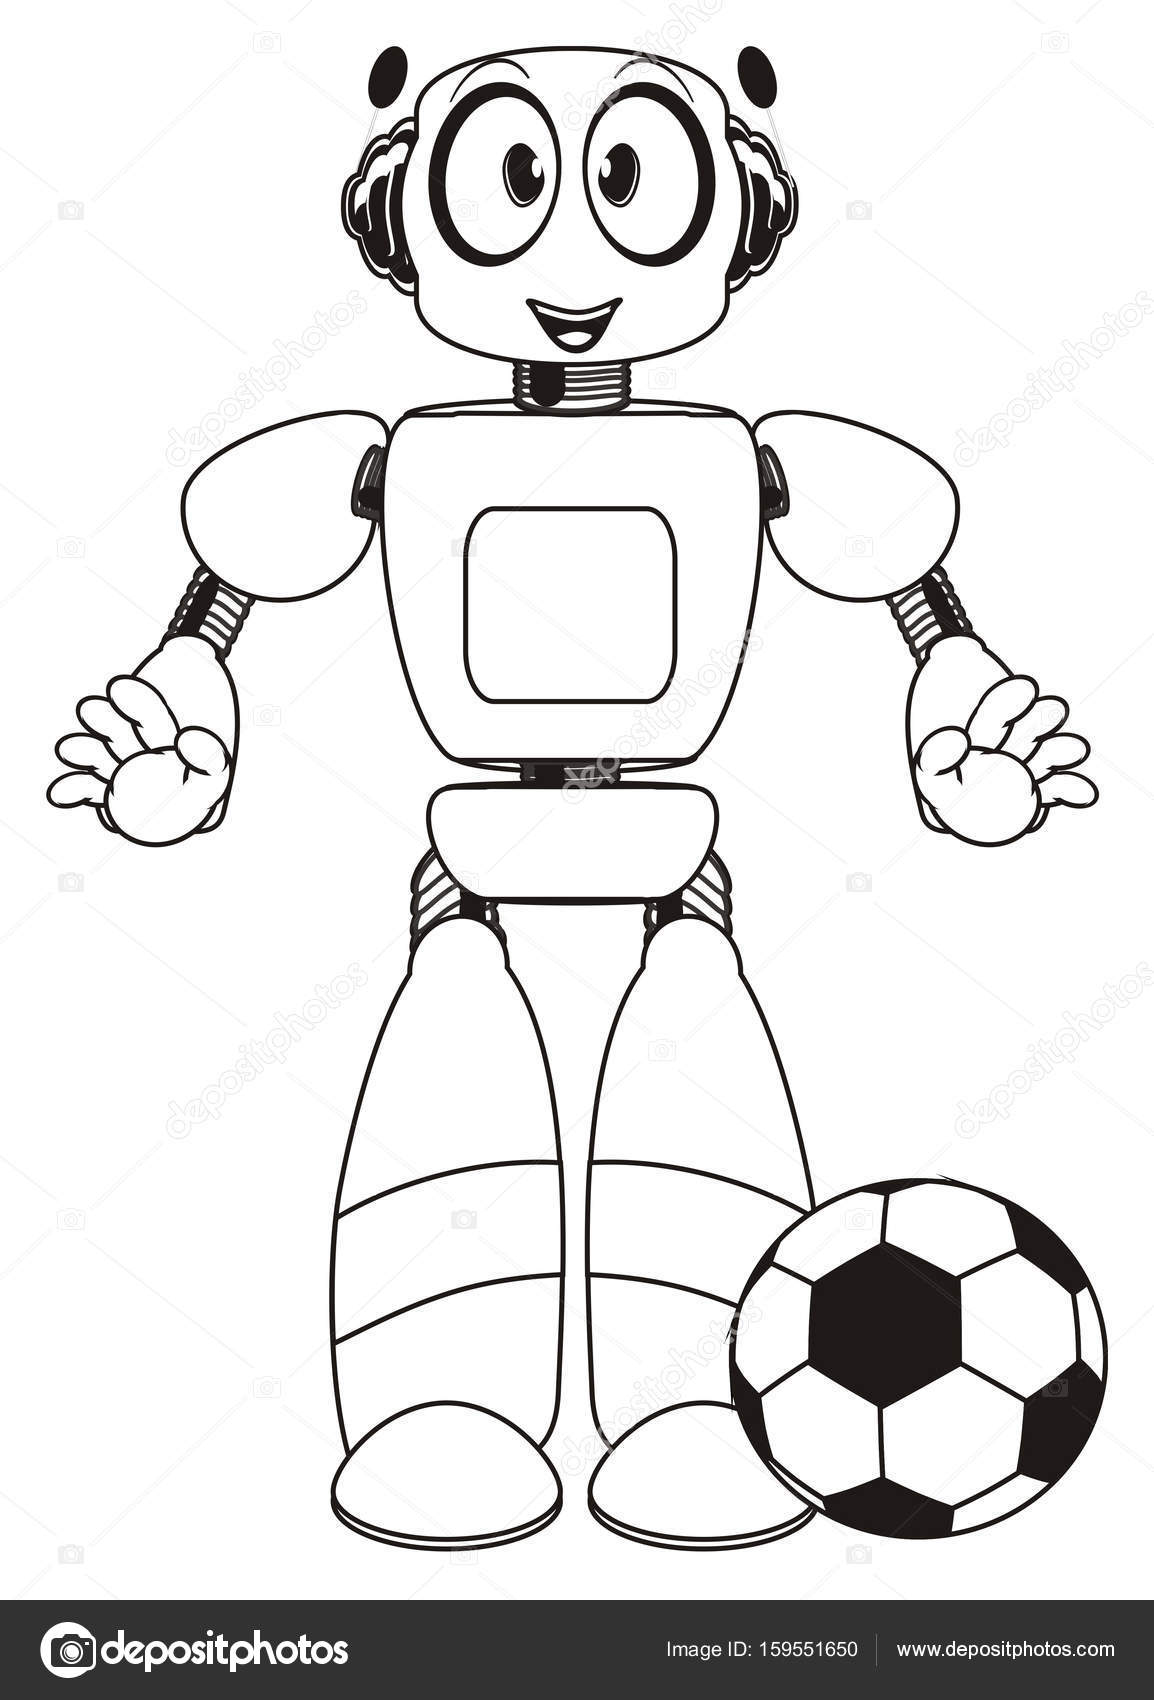 Coloring Cute Robot Stock Photo Tatty77tatty 159551650